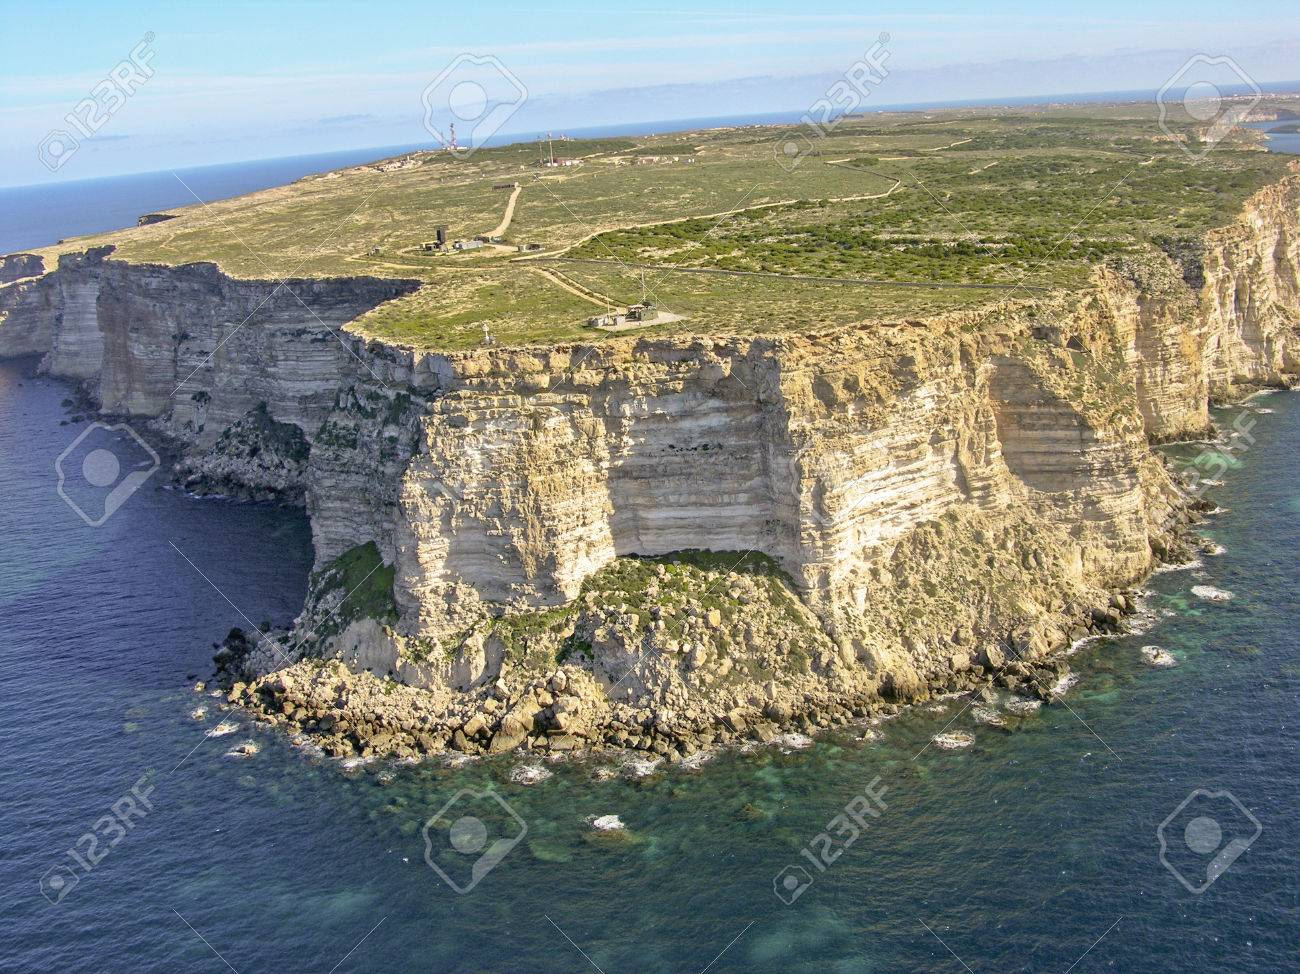 Promontory, Cliff In Sicily Island Stock Photo, Picture And ...